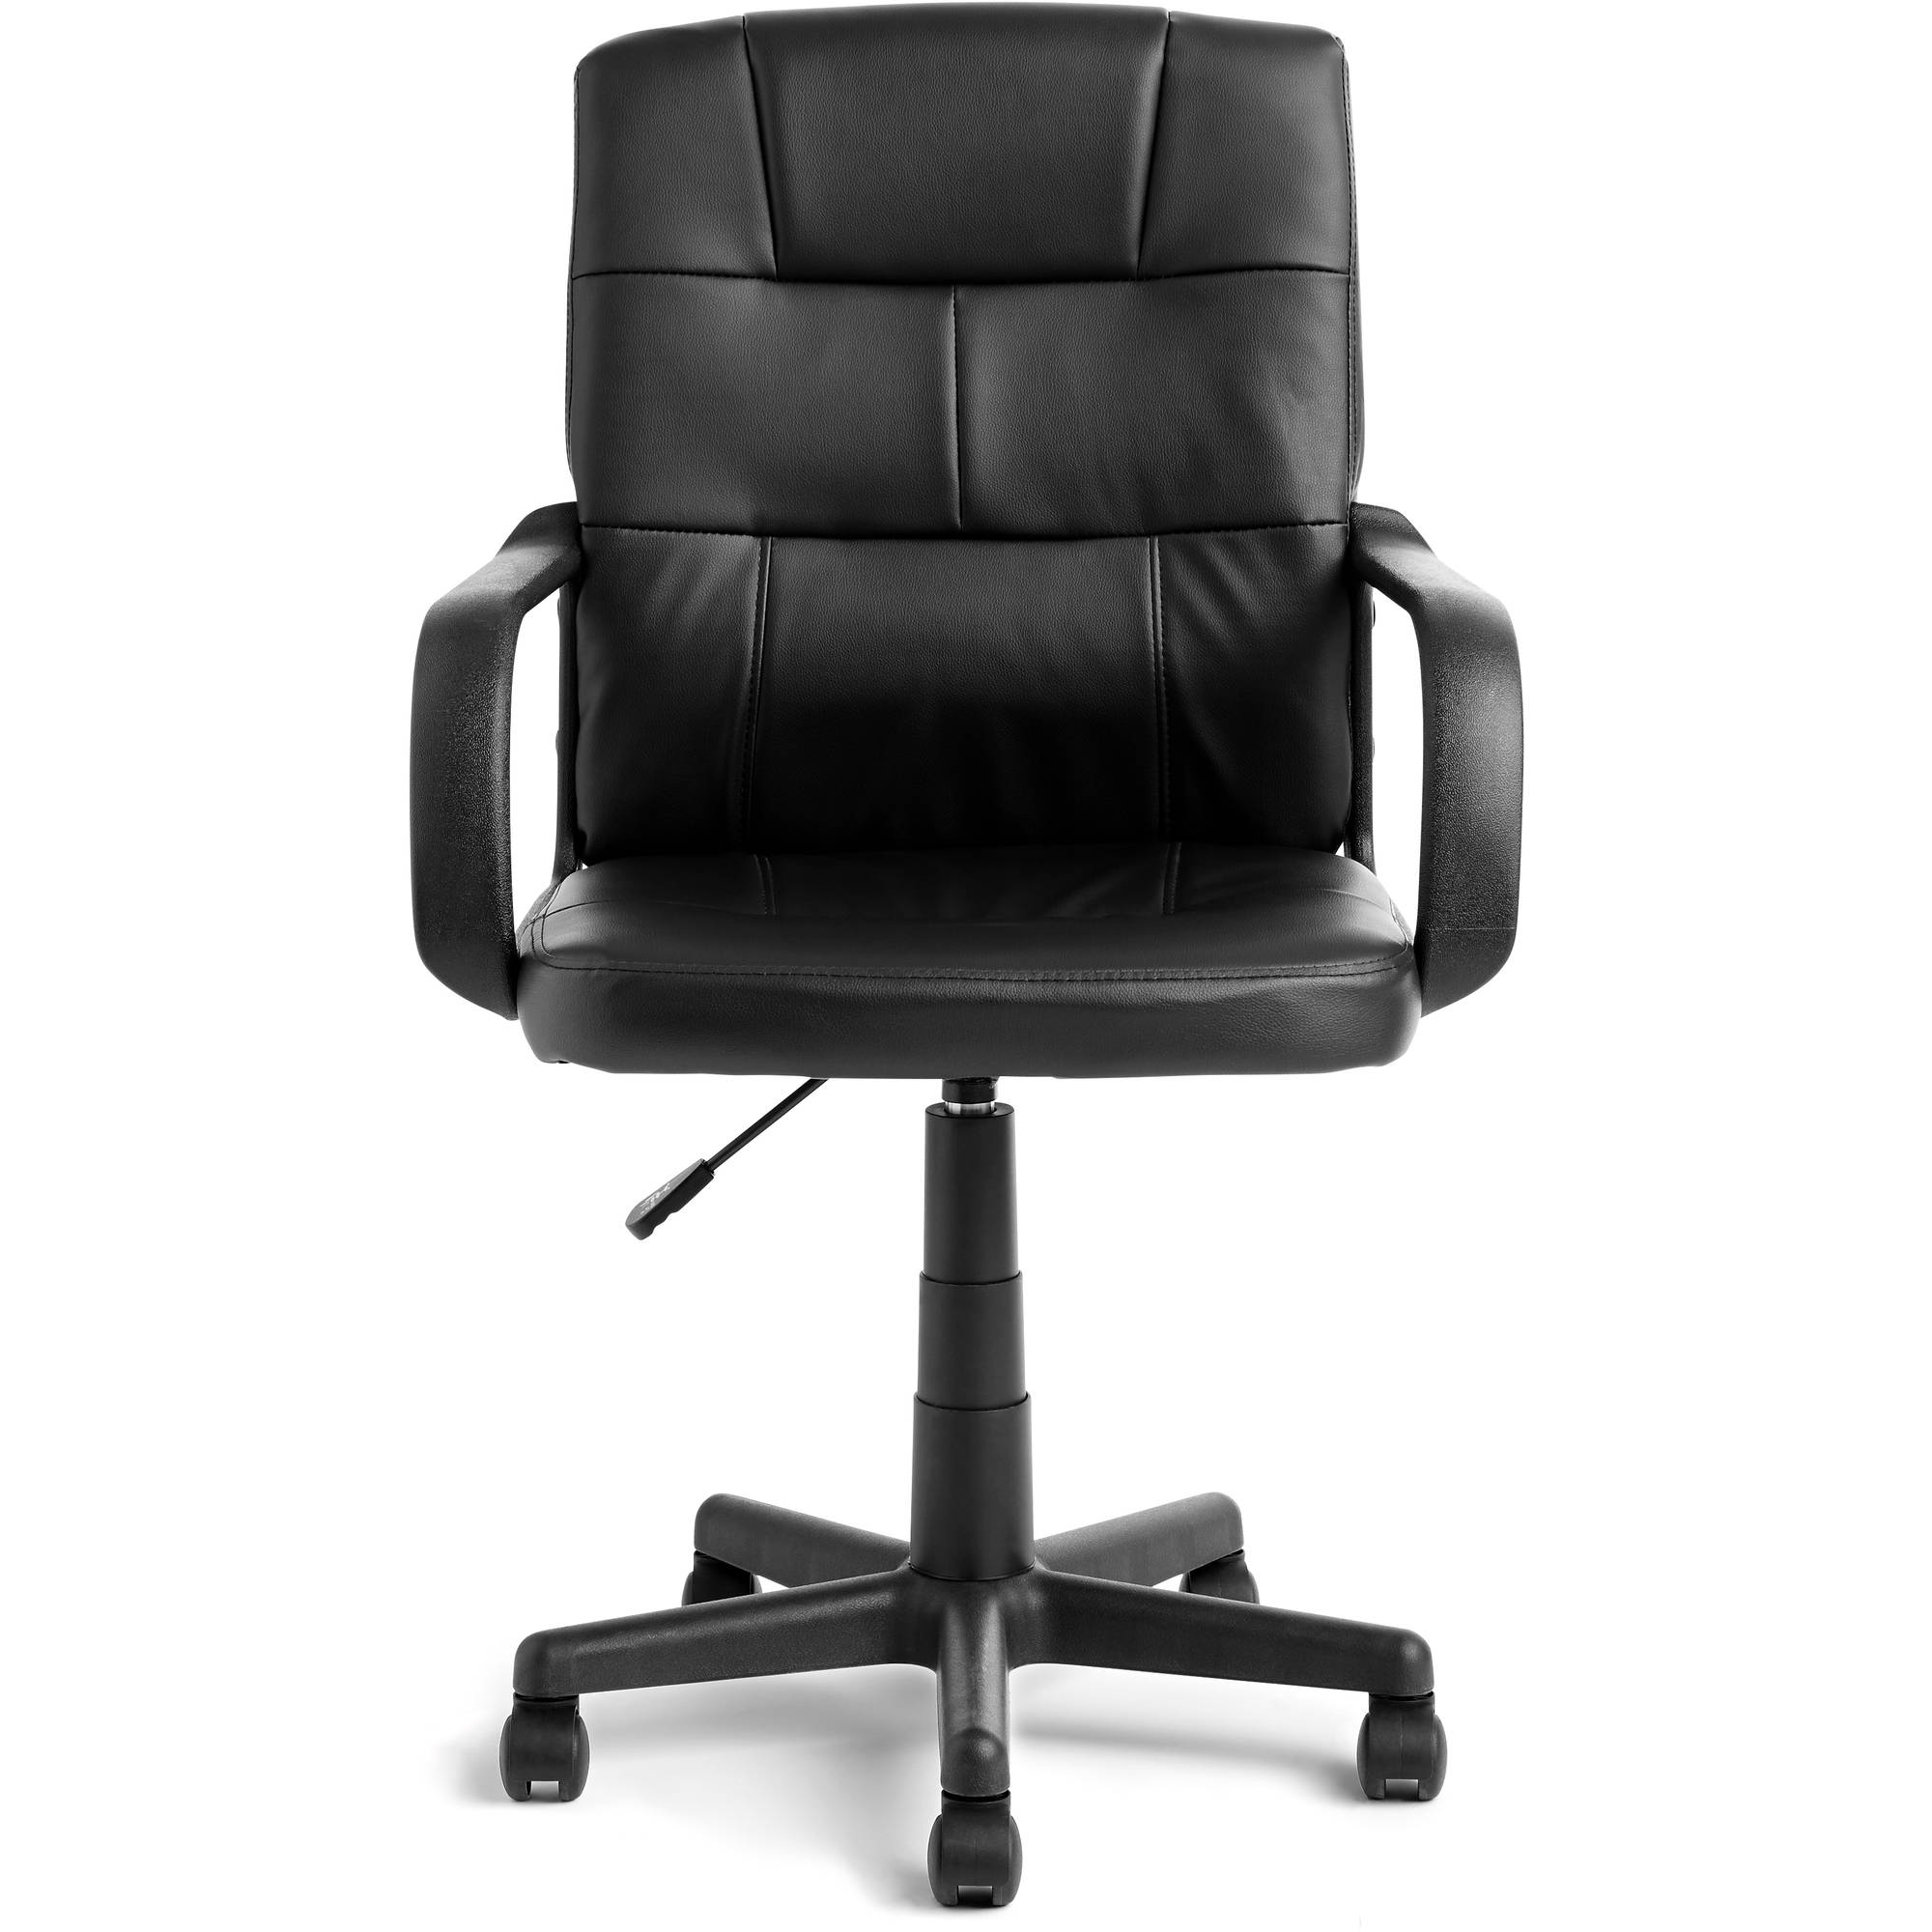 hight resolution of mainstays tufted leather mid back office chair multiple colors walmart com